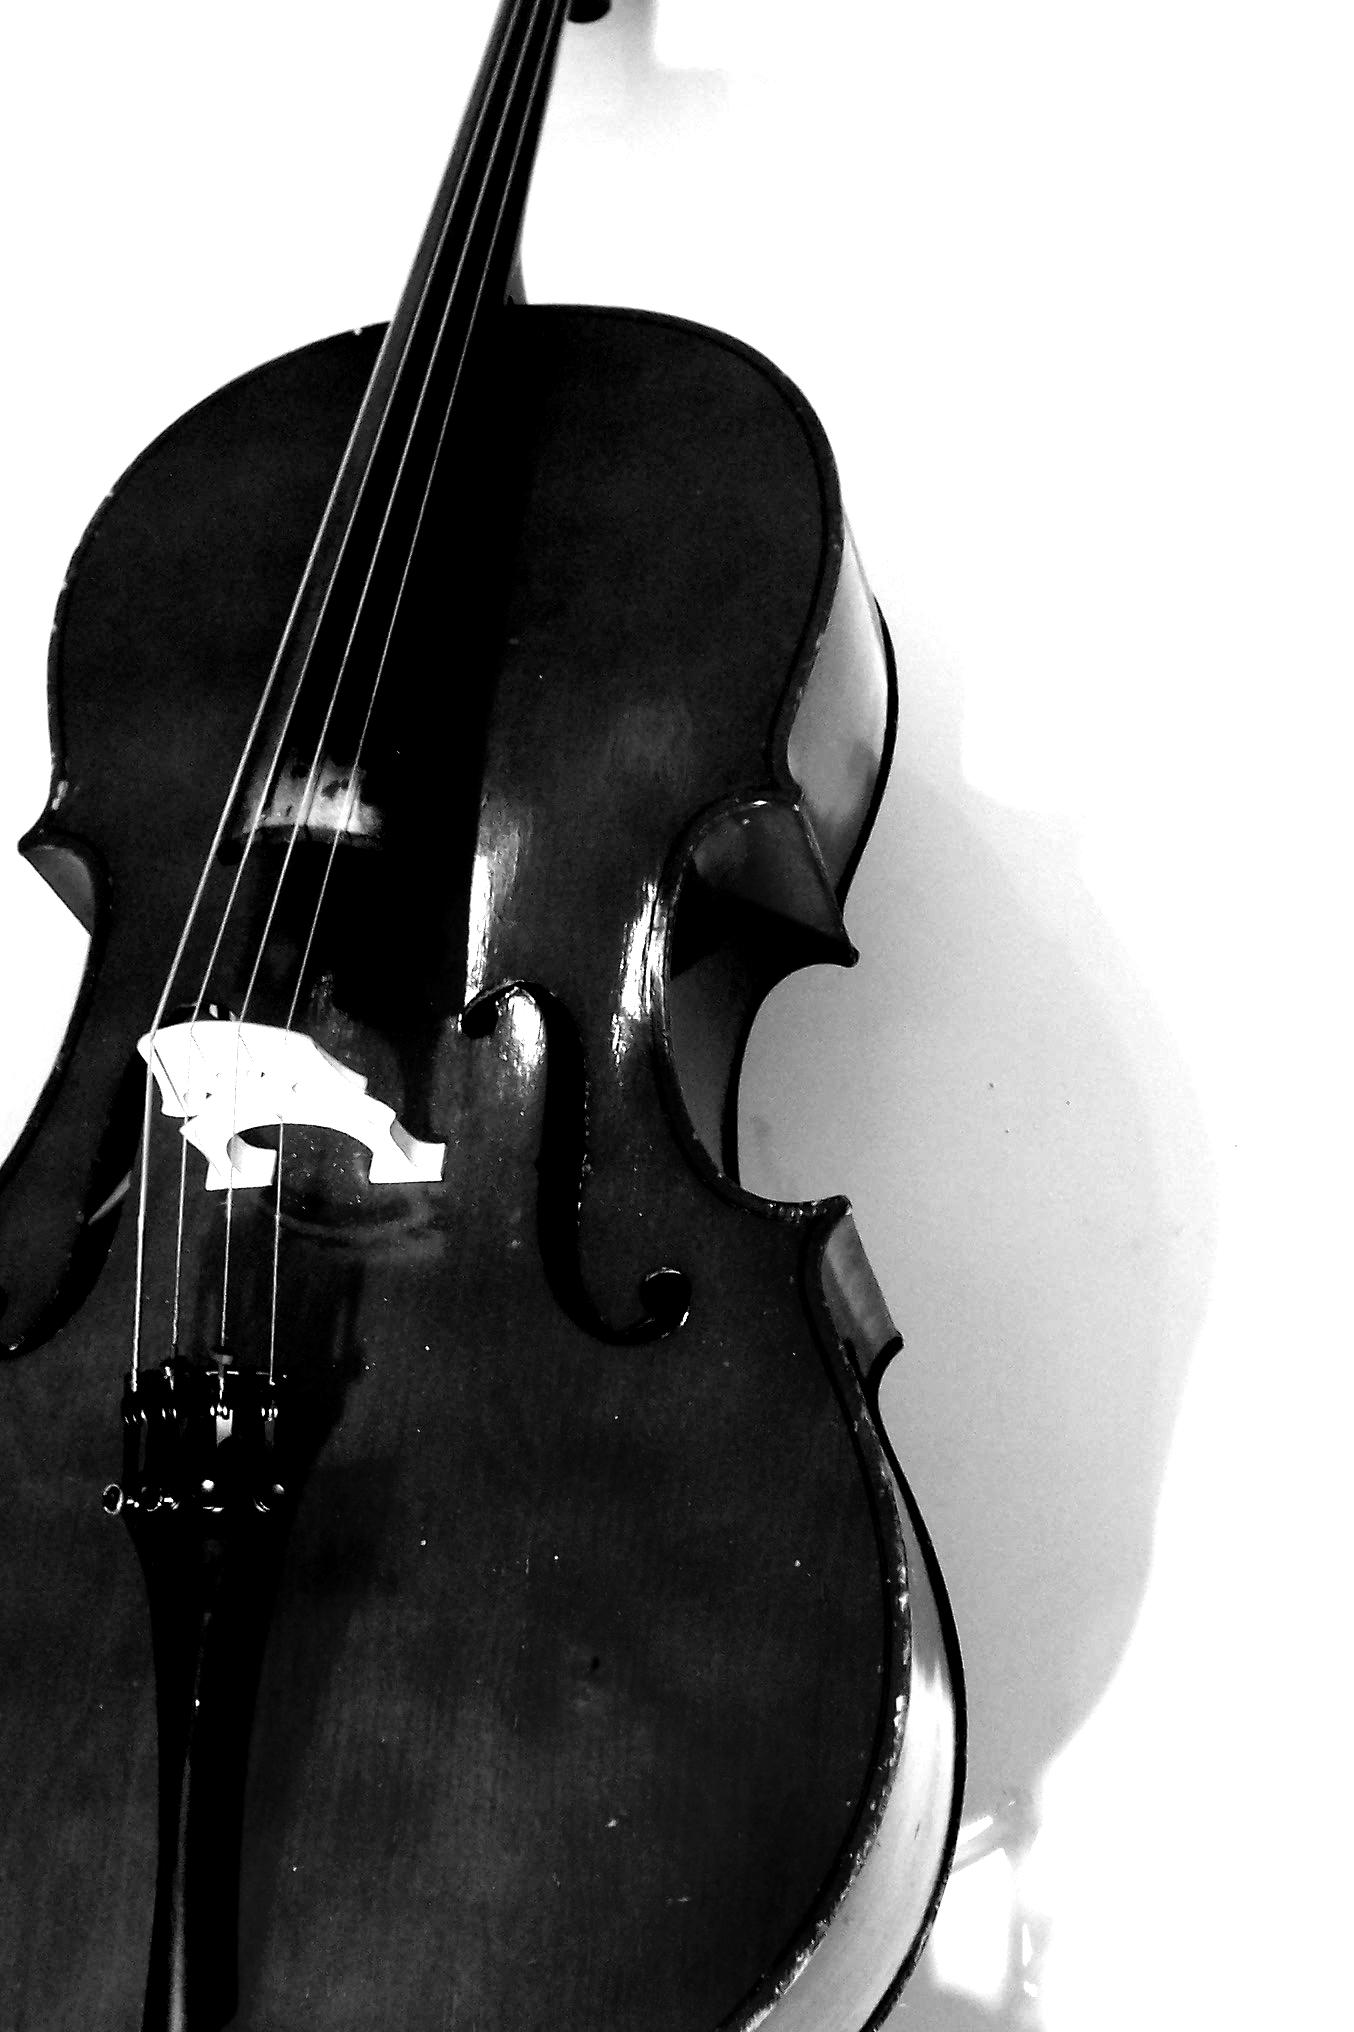 portrait of cello by suggestivetomatoes on deviantart